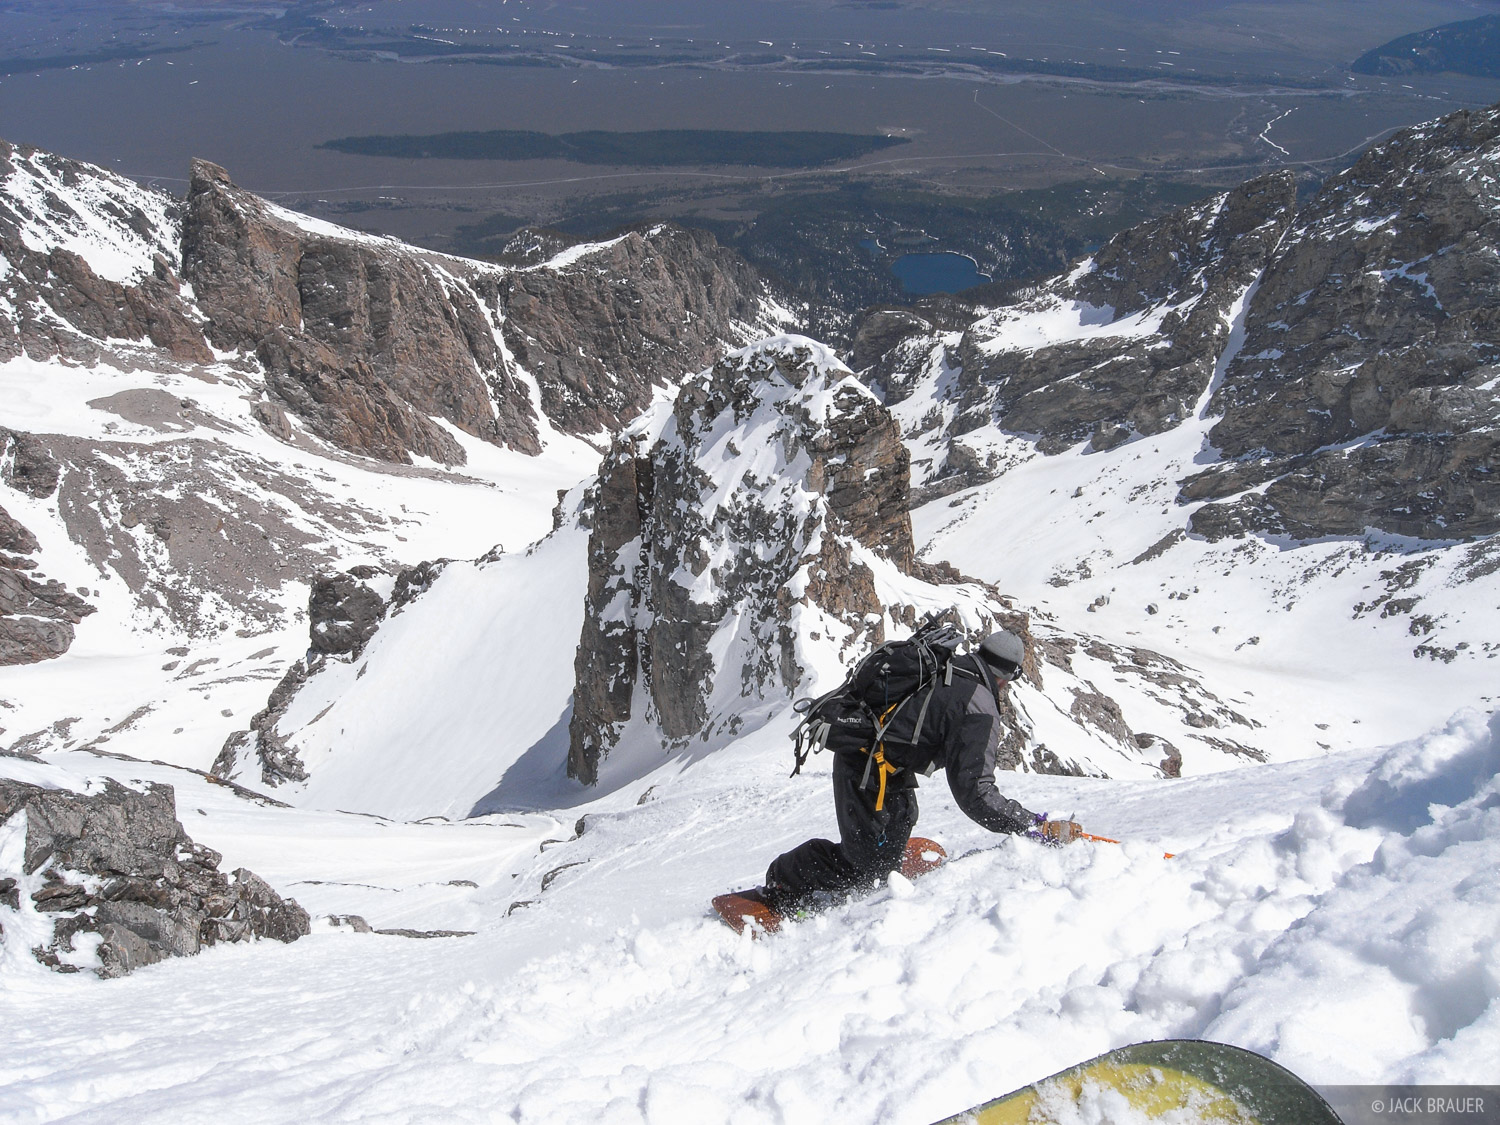 Jason King drops in to the steep northeast face of the Middle Teton. This is a lot steeper than it looks in the photo!